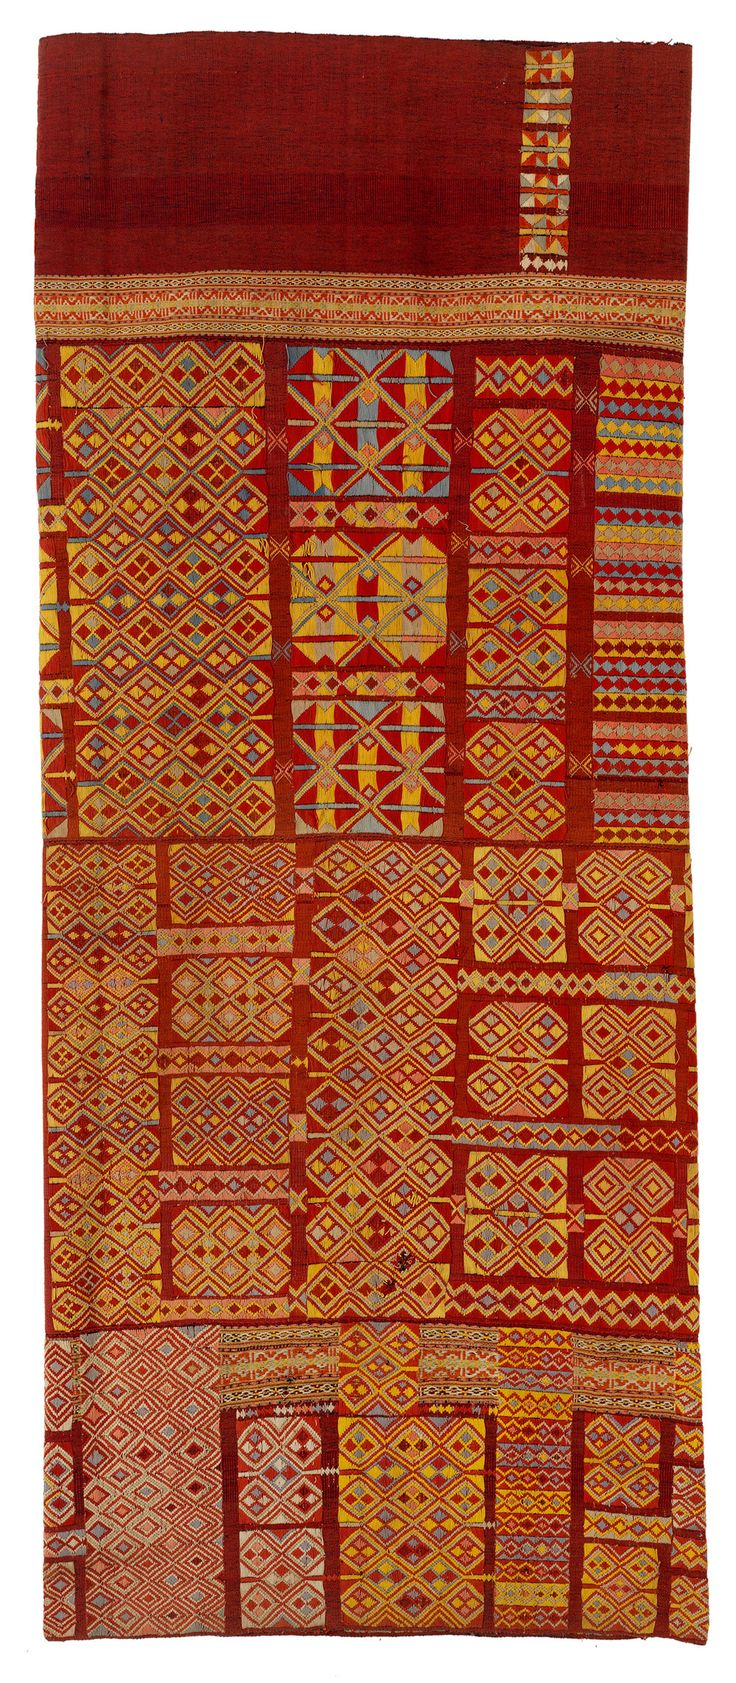 As part of the 50th anniversary celebrations of the Fowler Museum at UCLA, Los Angeles, a series of three world textile exhibitions are on show there this autumn. Textiles of Timor, Island in the Woven Sea opens 7 September 2014 until 4 January 2015.